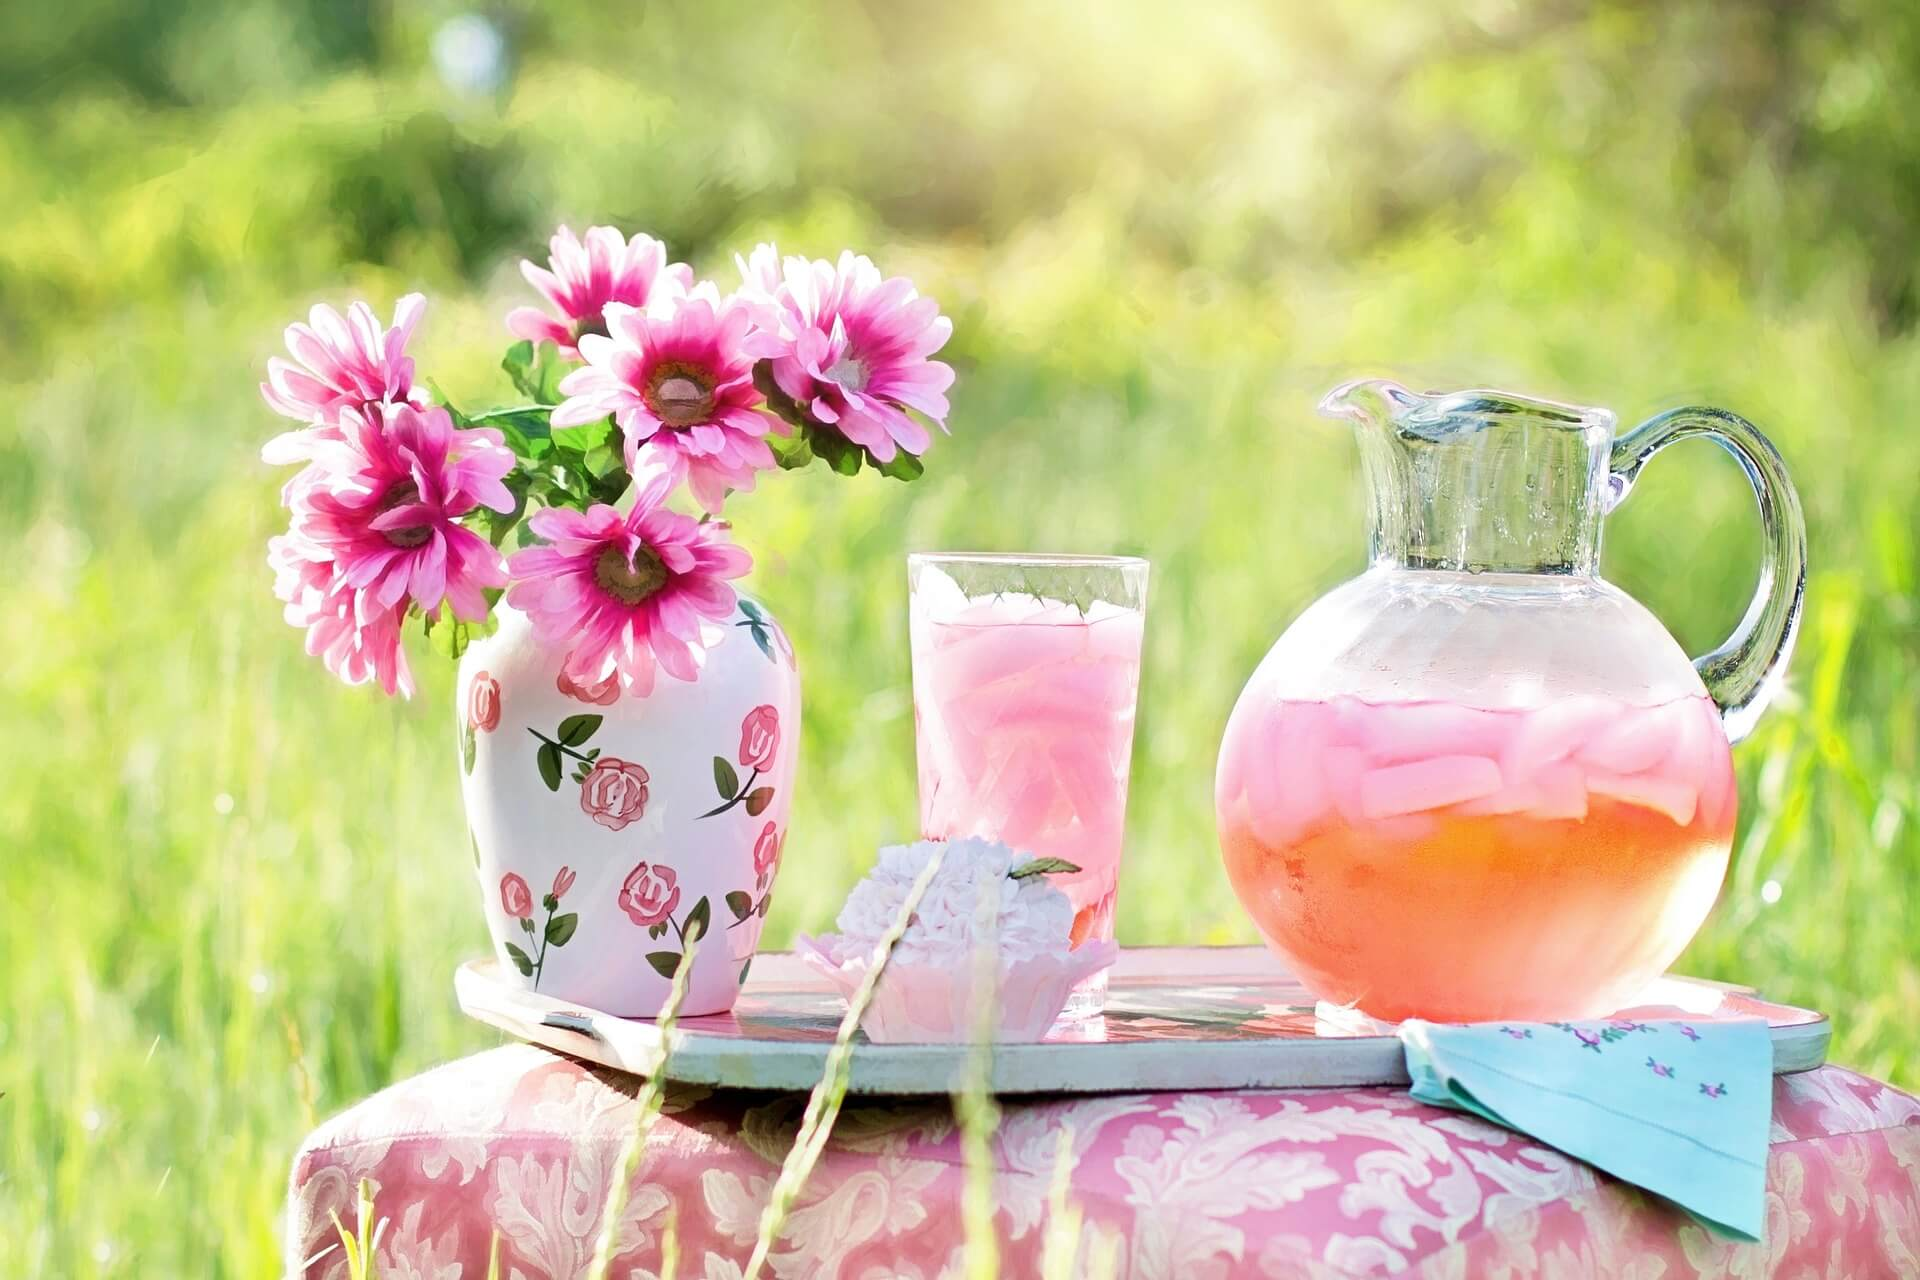 pink lemonade in pitcher